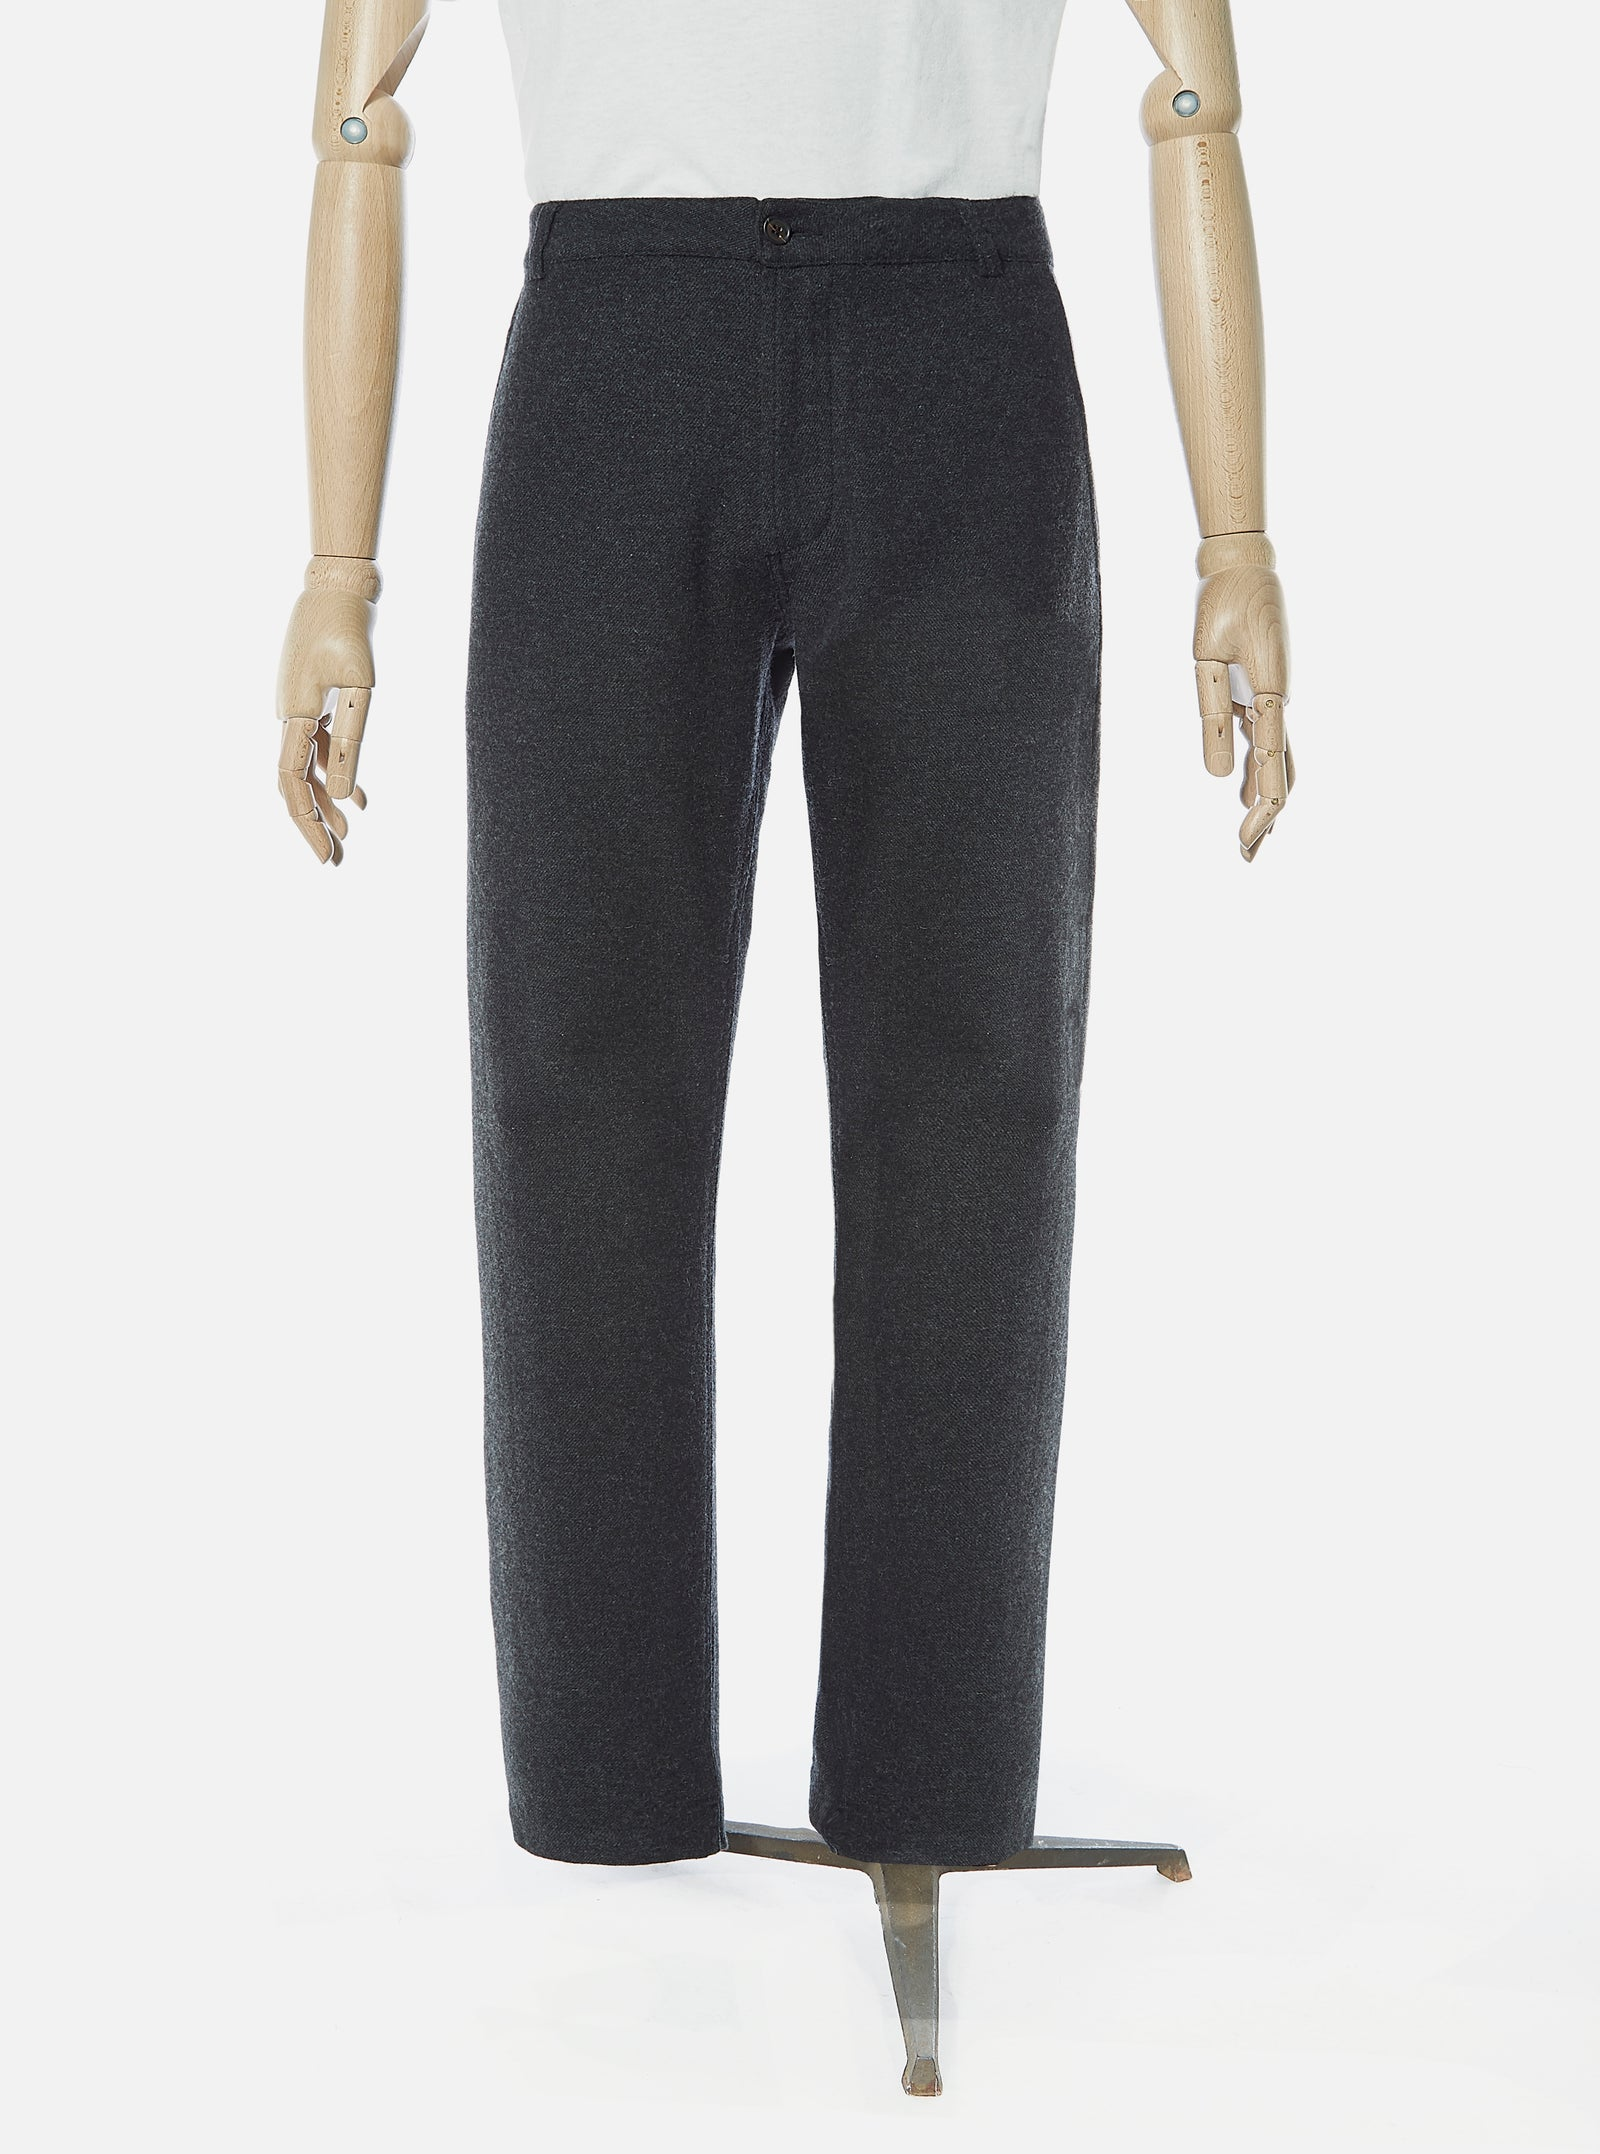 Universal Works Aston Pant in Charcoal Wool Marl II